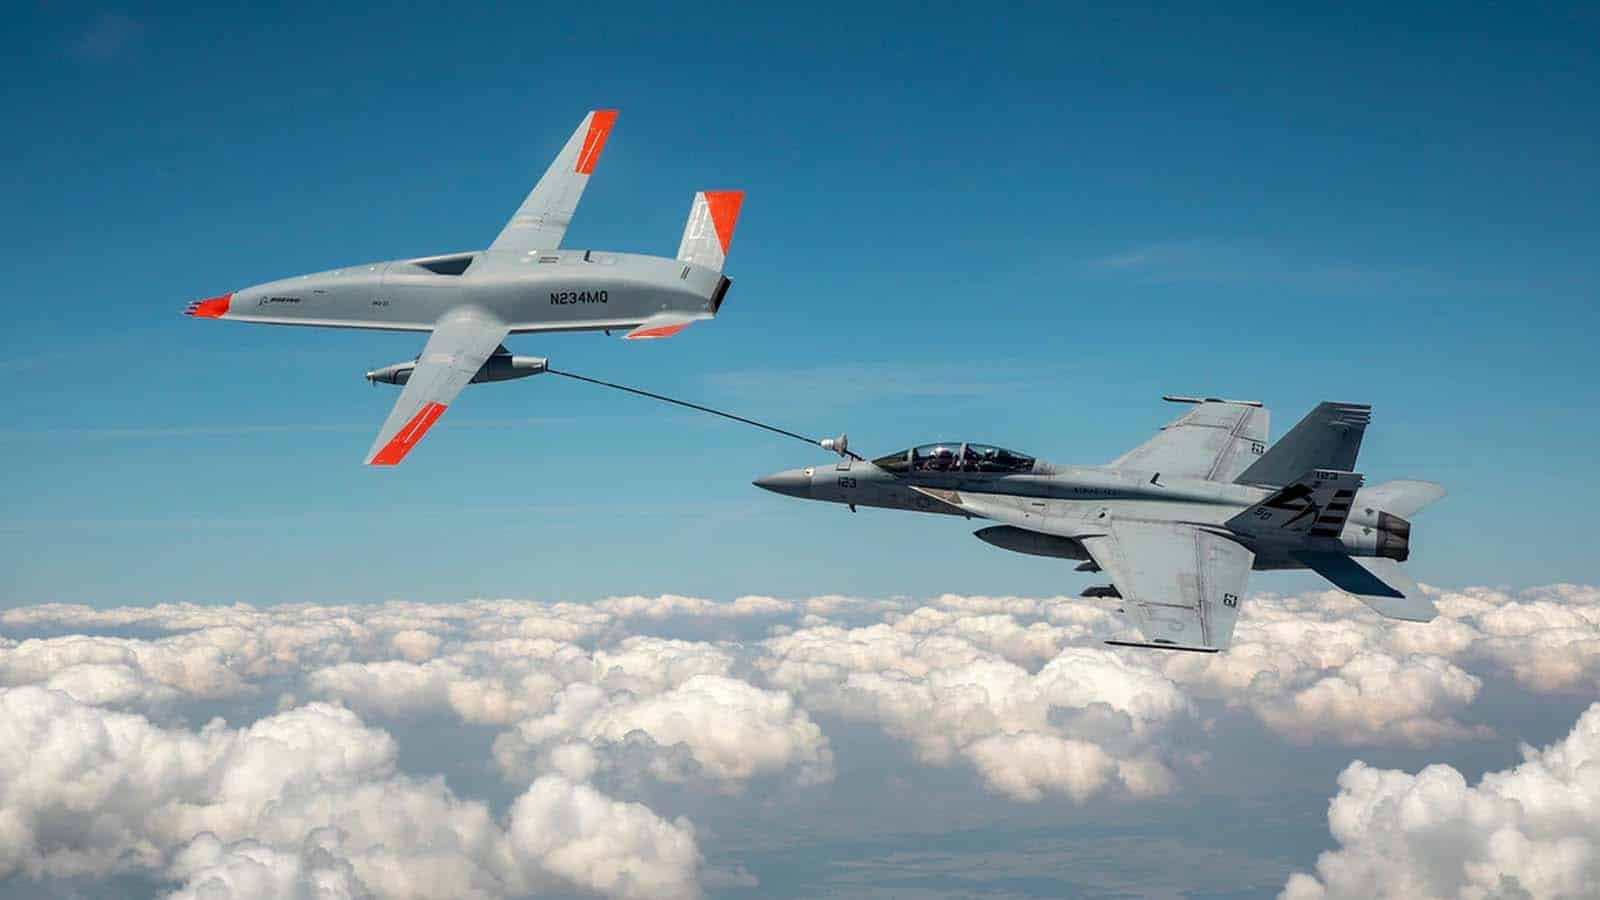 boeing drone refilling fighter jet